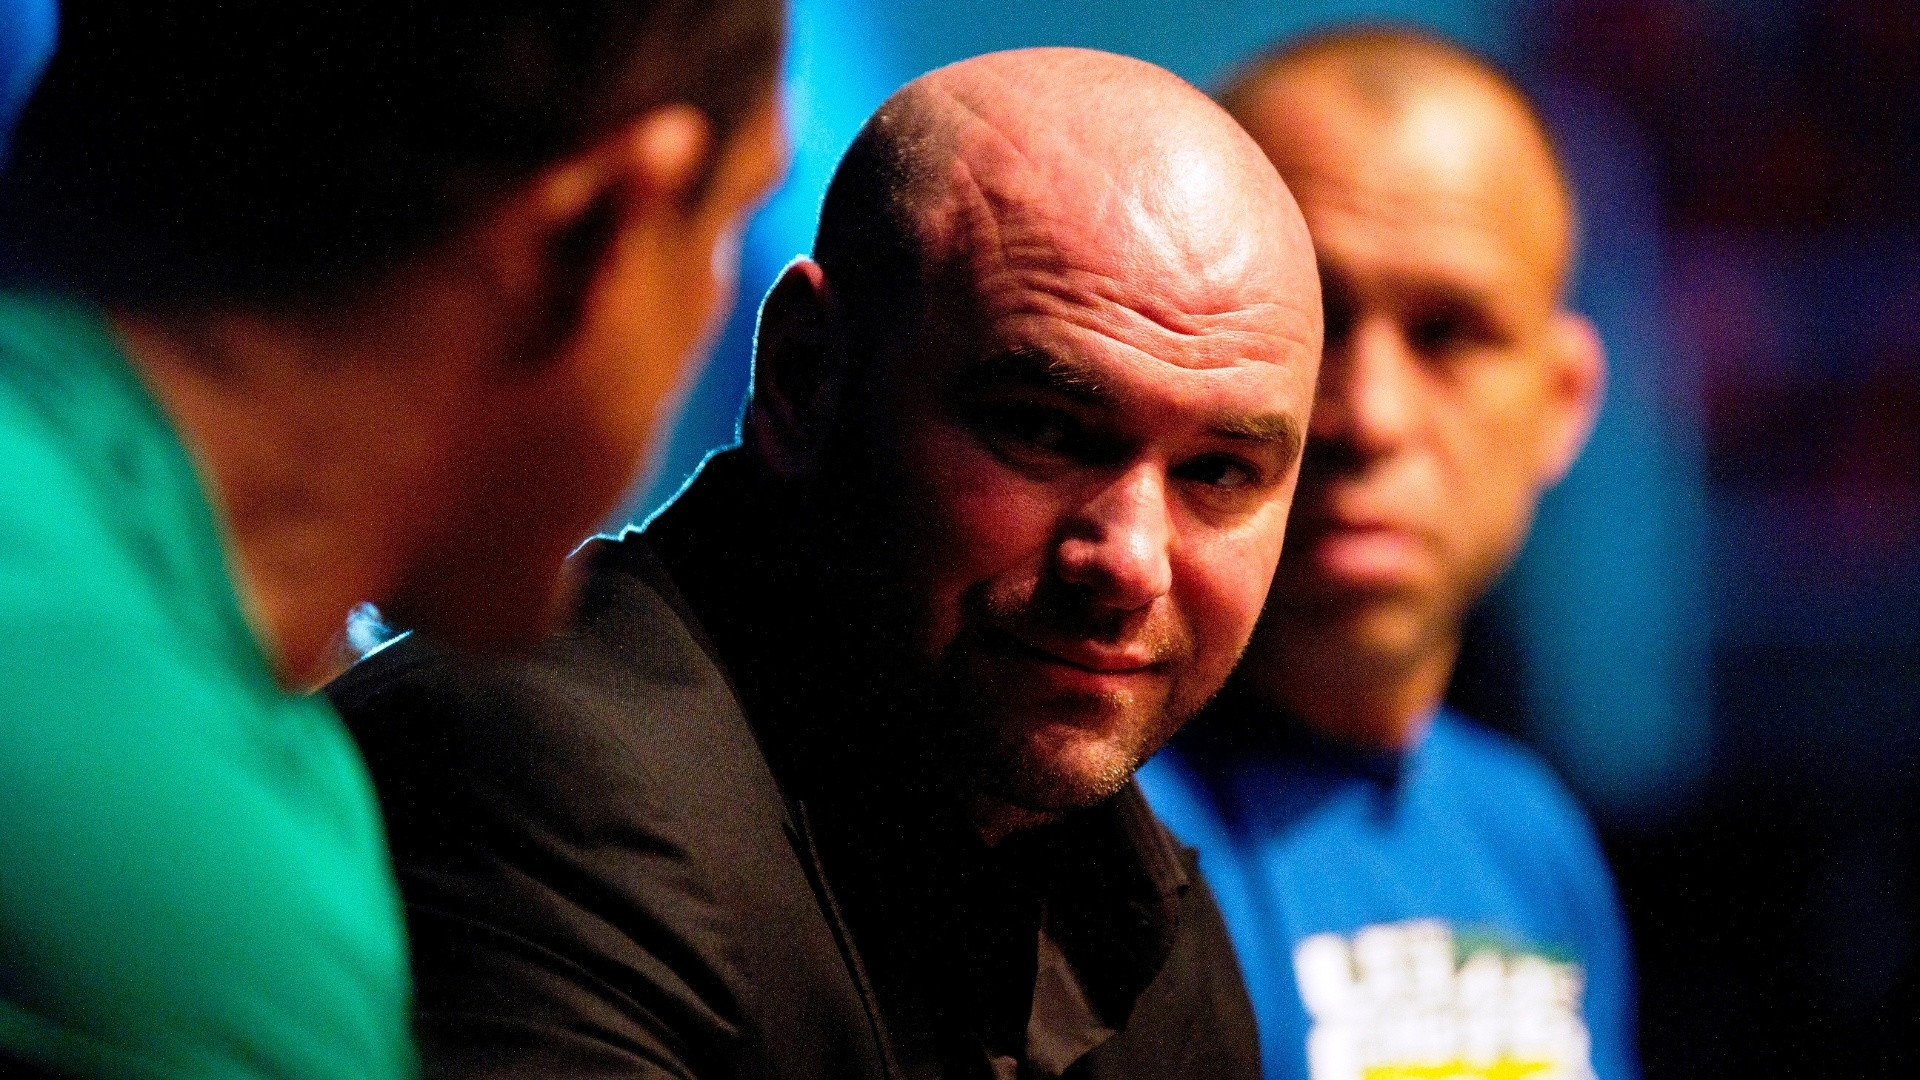 Dana White conversa com Vitor Belfort e Wanderlei Silva durante gravao do TUF Brasil